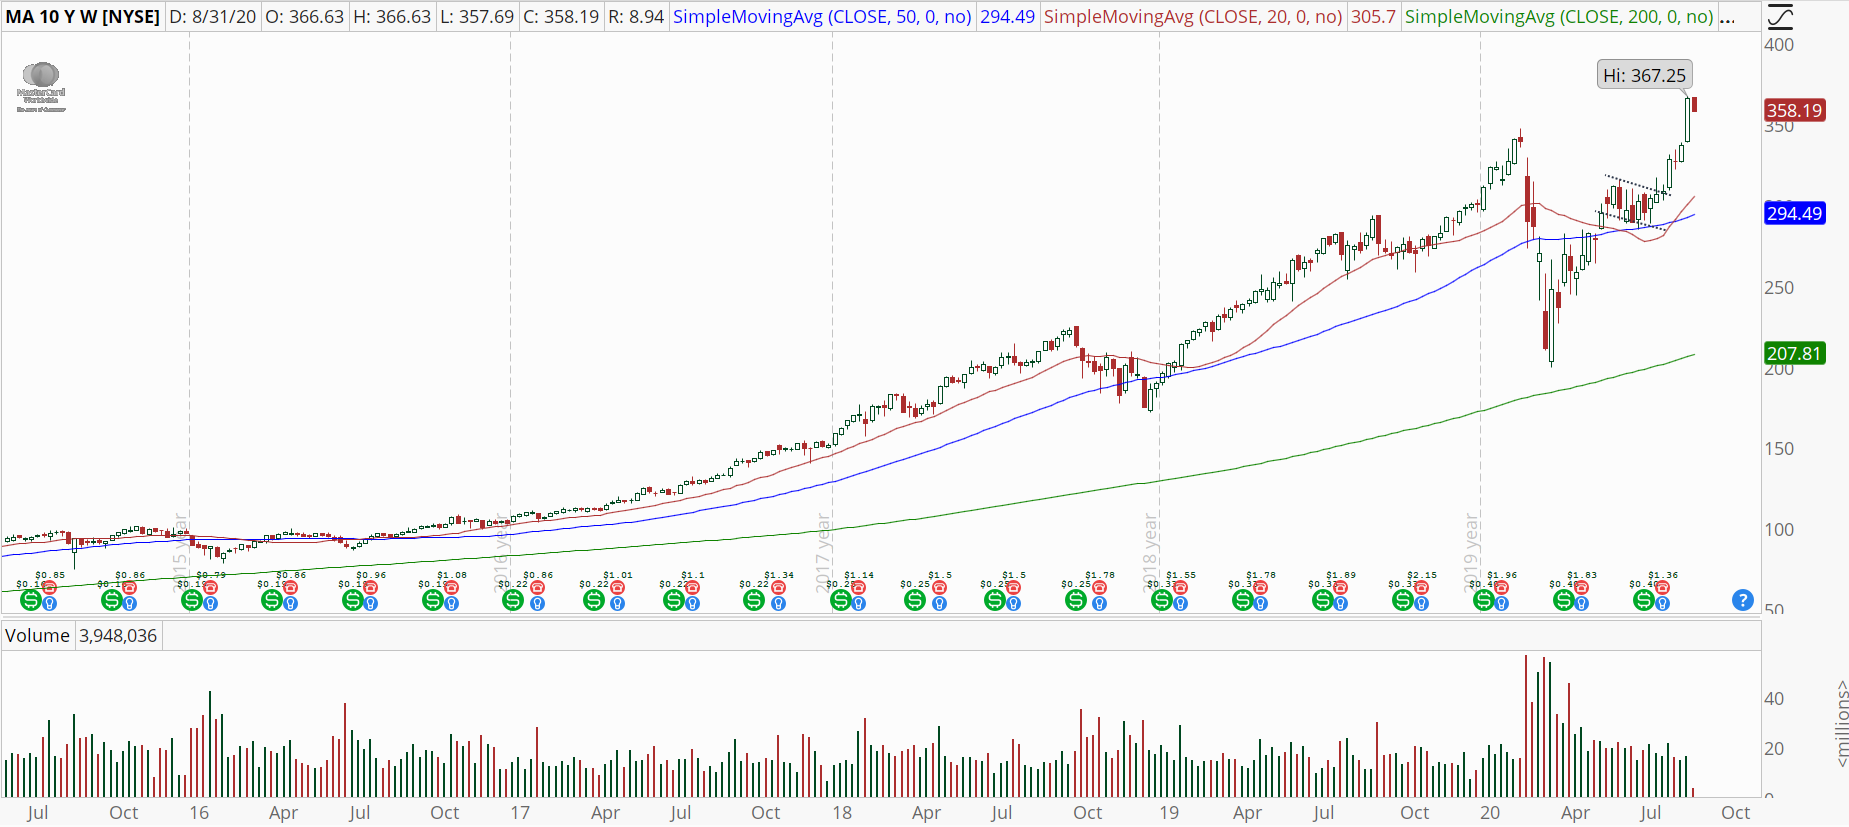 Mastercard (MA) weekly chart showing powerful uptrend